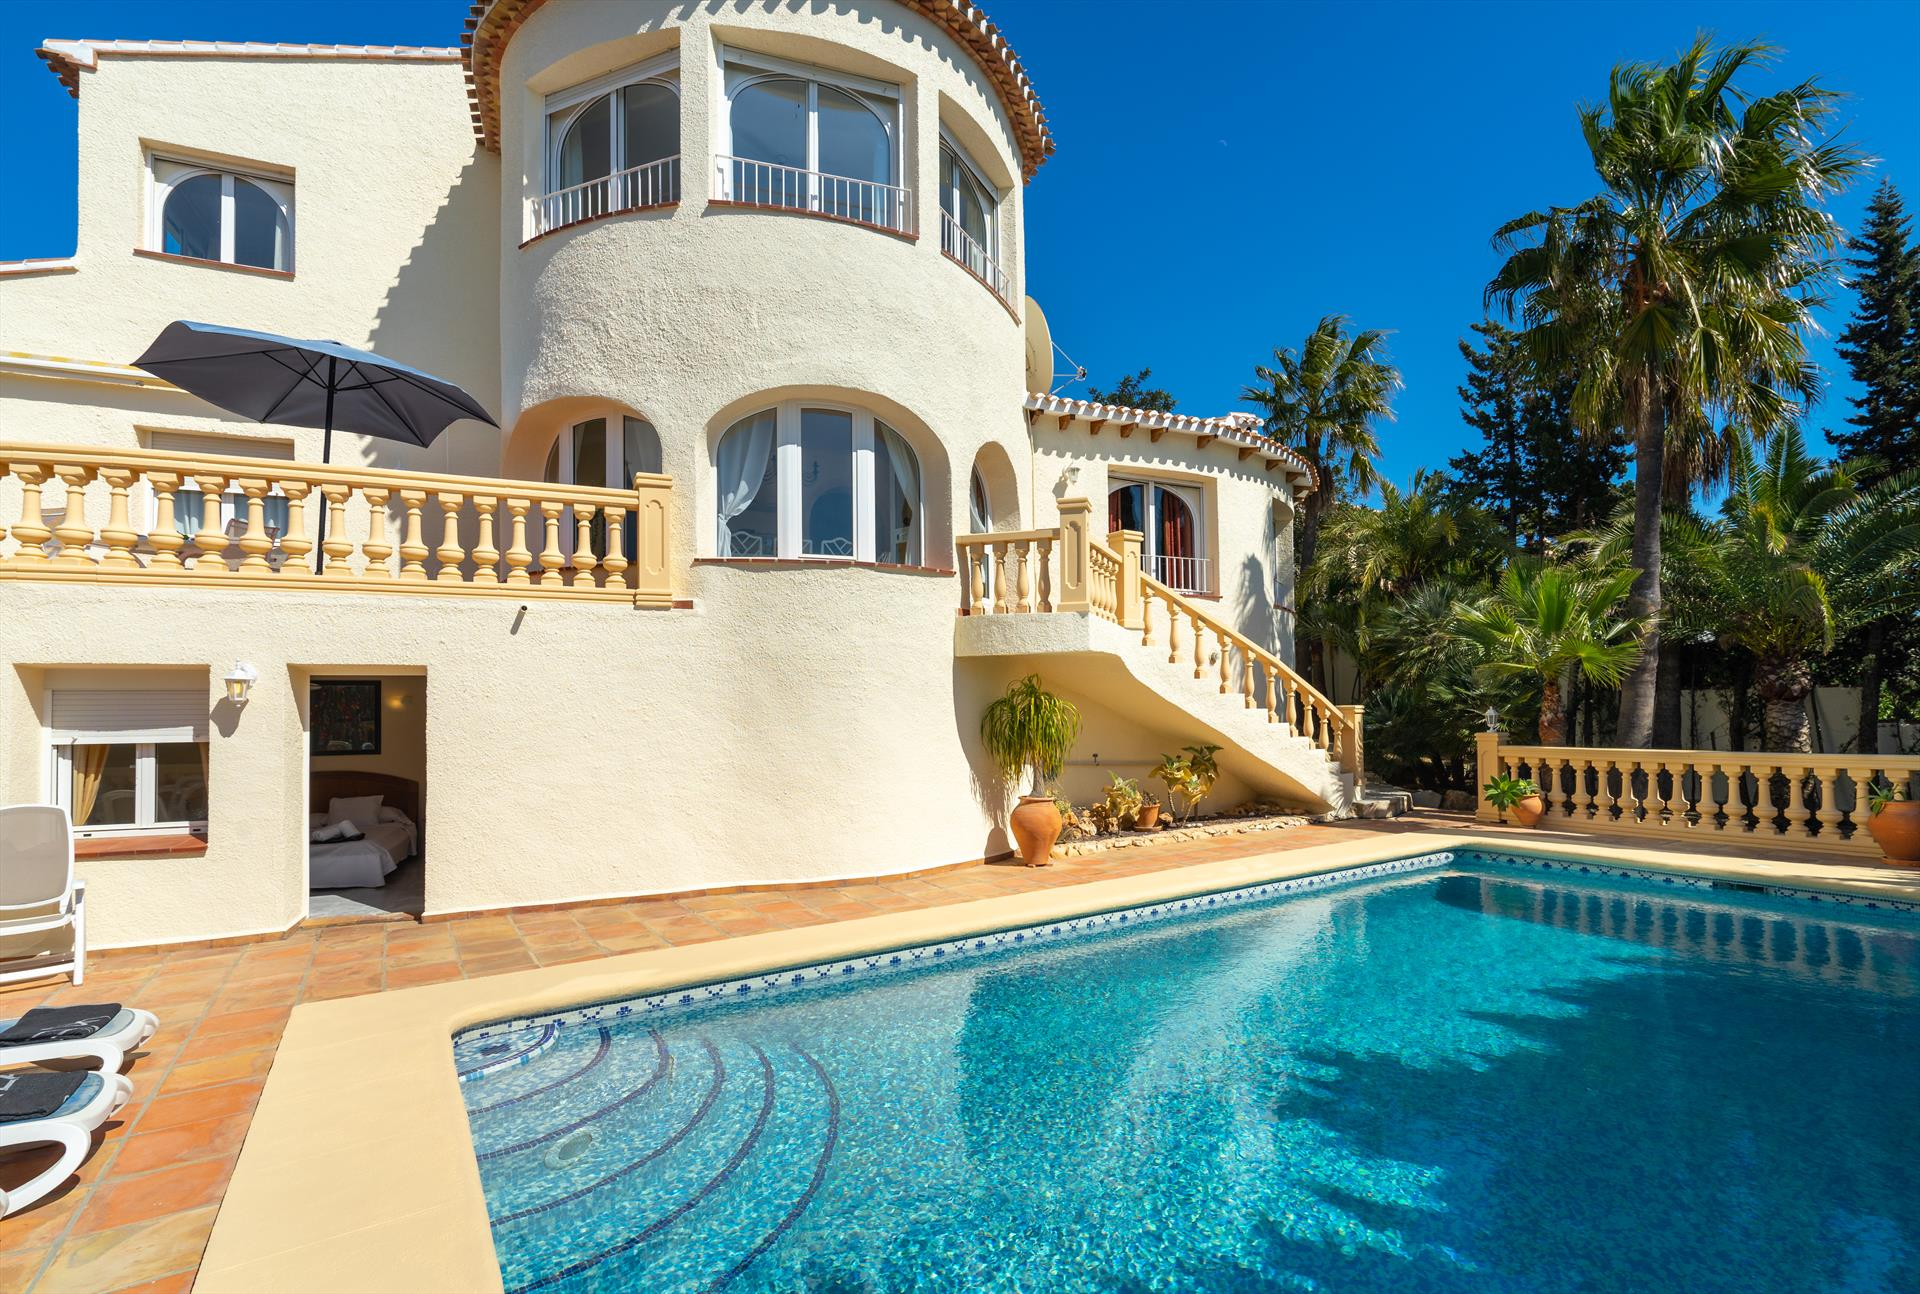 Villa Hermosa 8 pax, Classic and comfortable villa in Javea, on the Costa Blanca, Spain  with private pool for 8 persons...